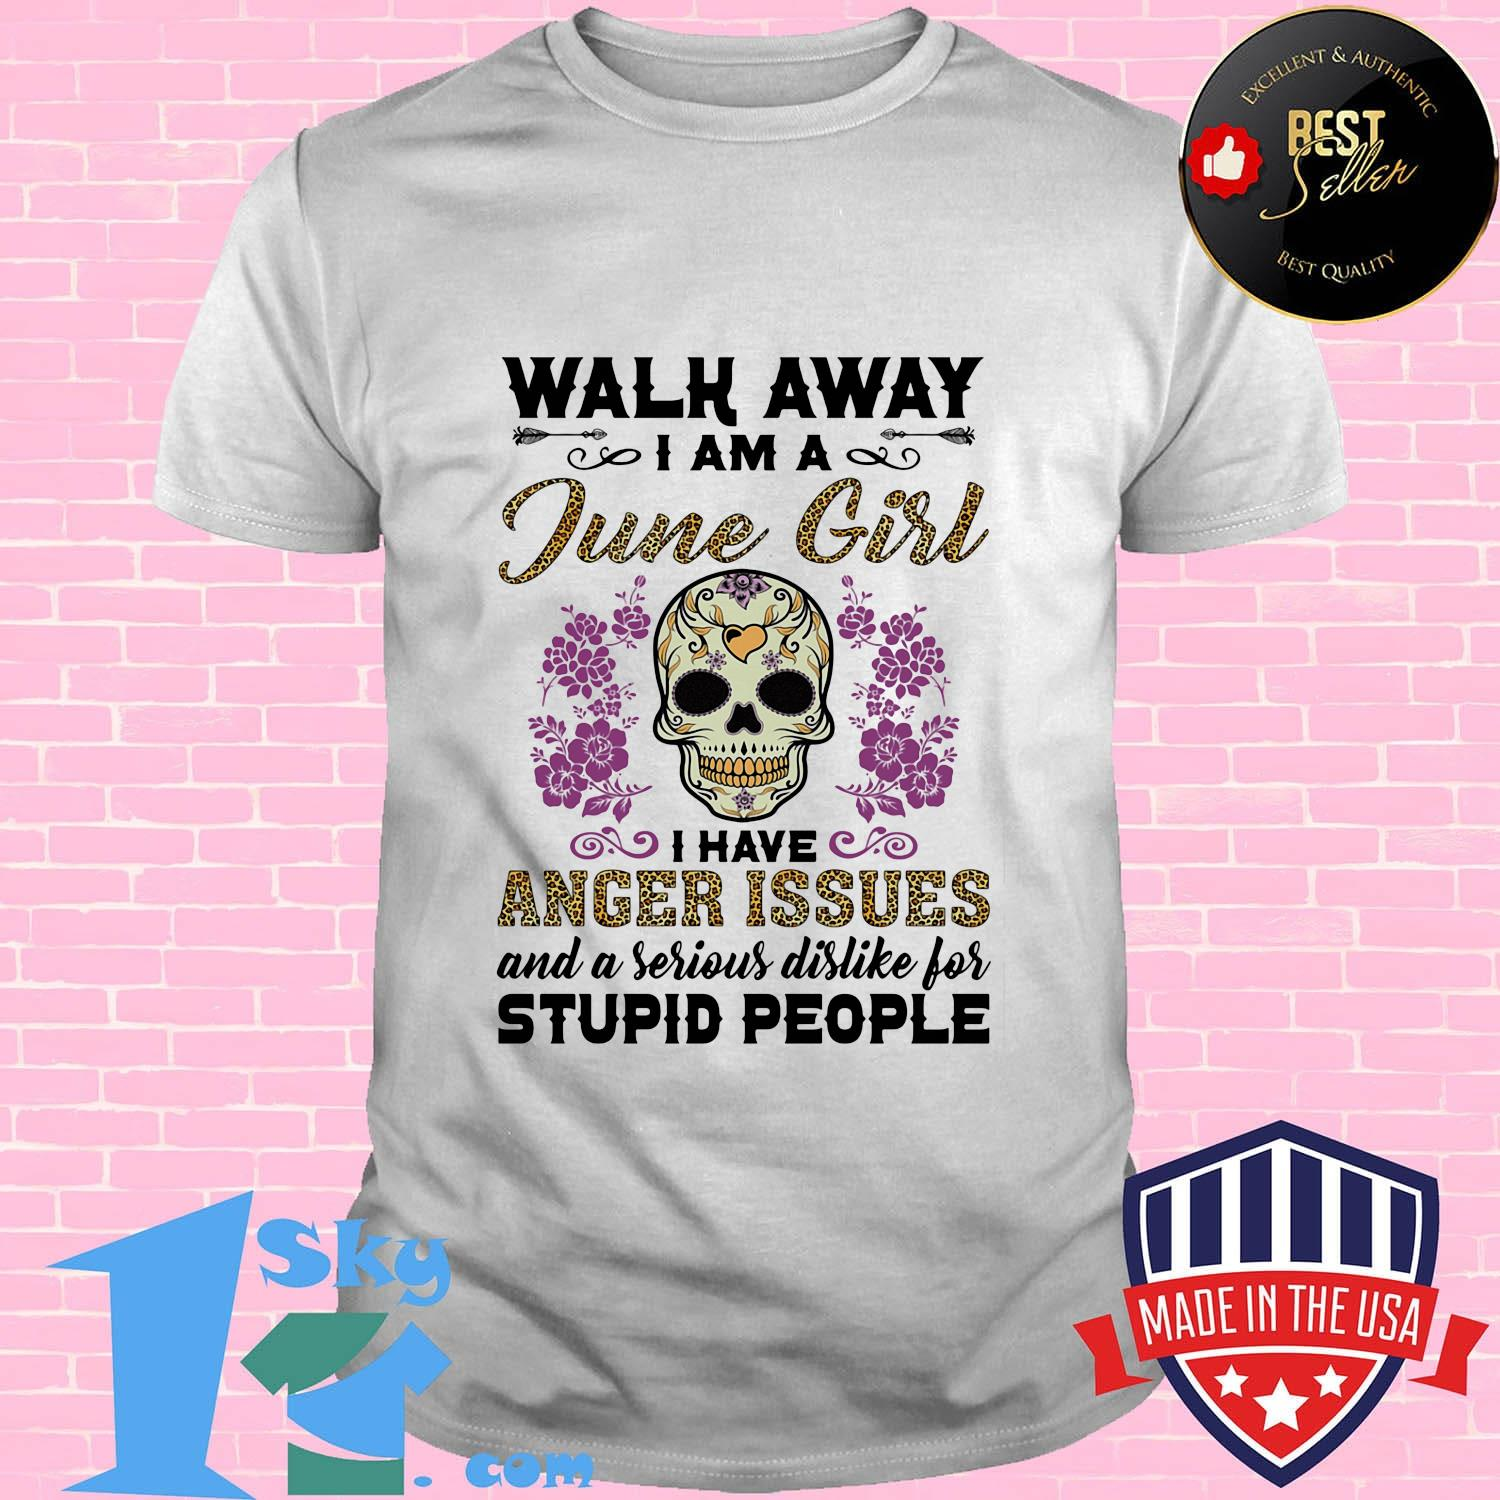 Walk away I am a March girl I have anger issues and a serious dislike for skull shirt